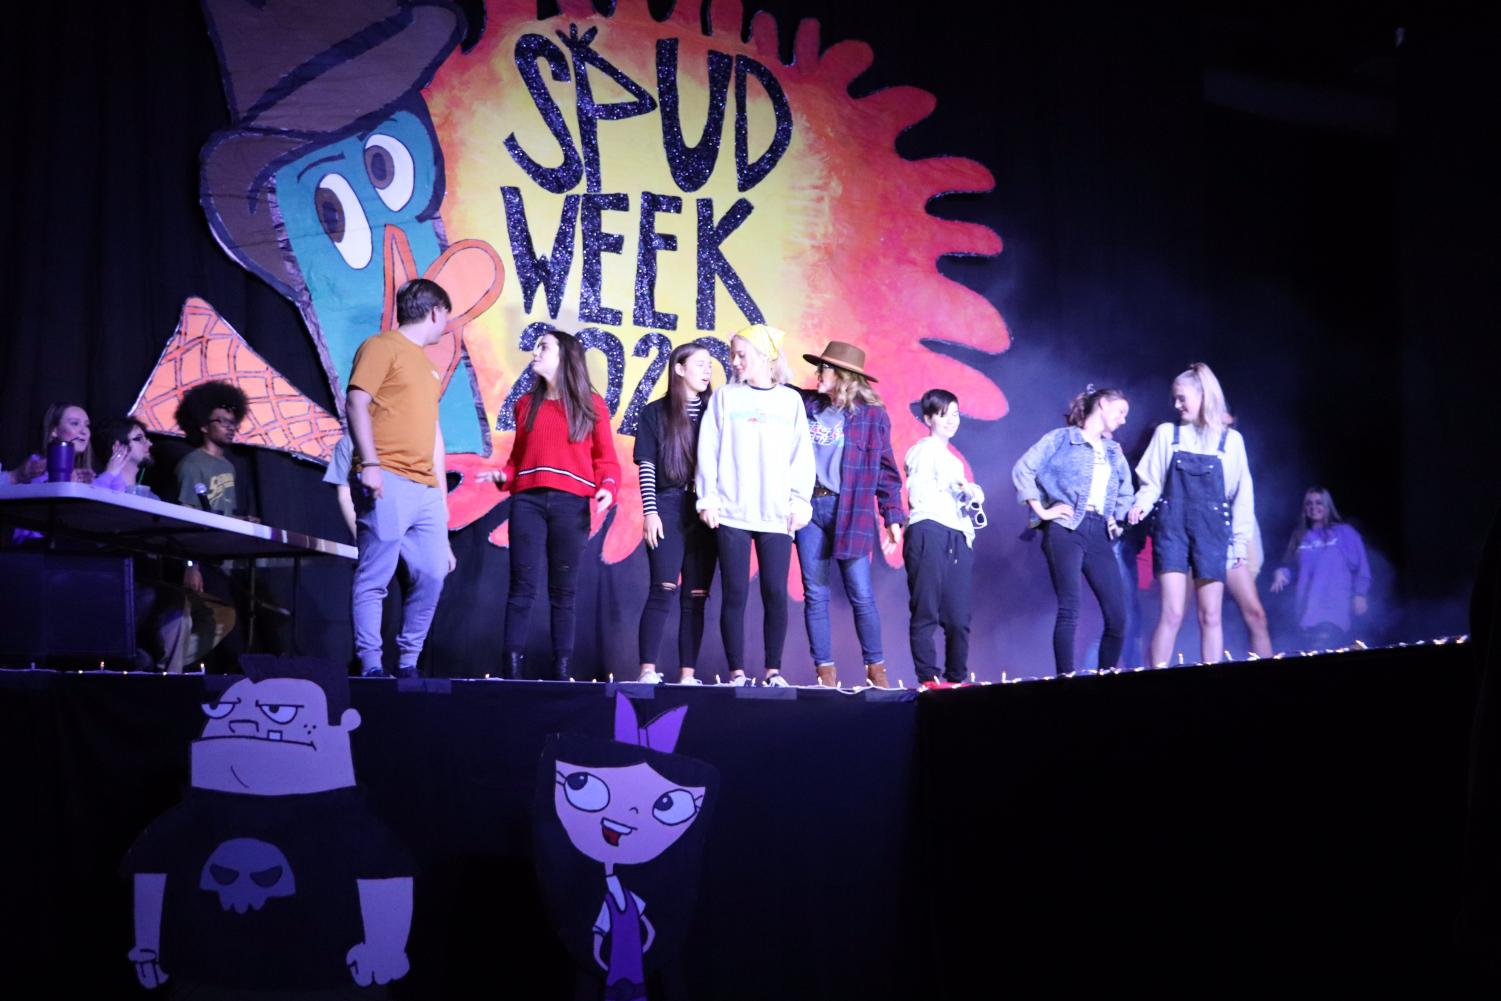 Contestants of the SPUD Fashion Show